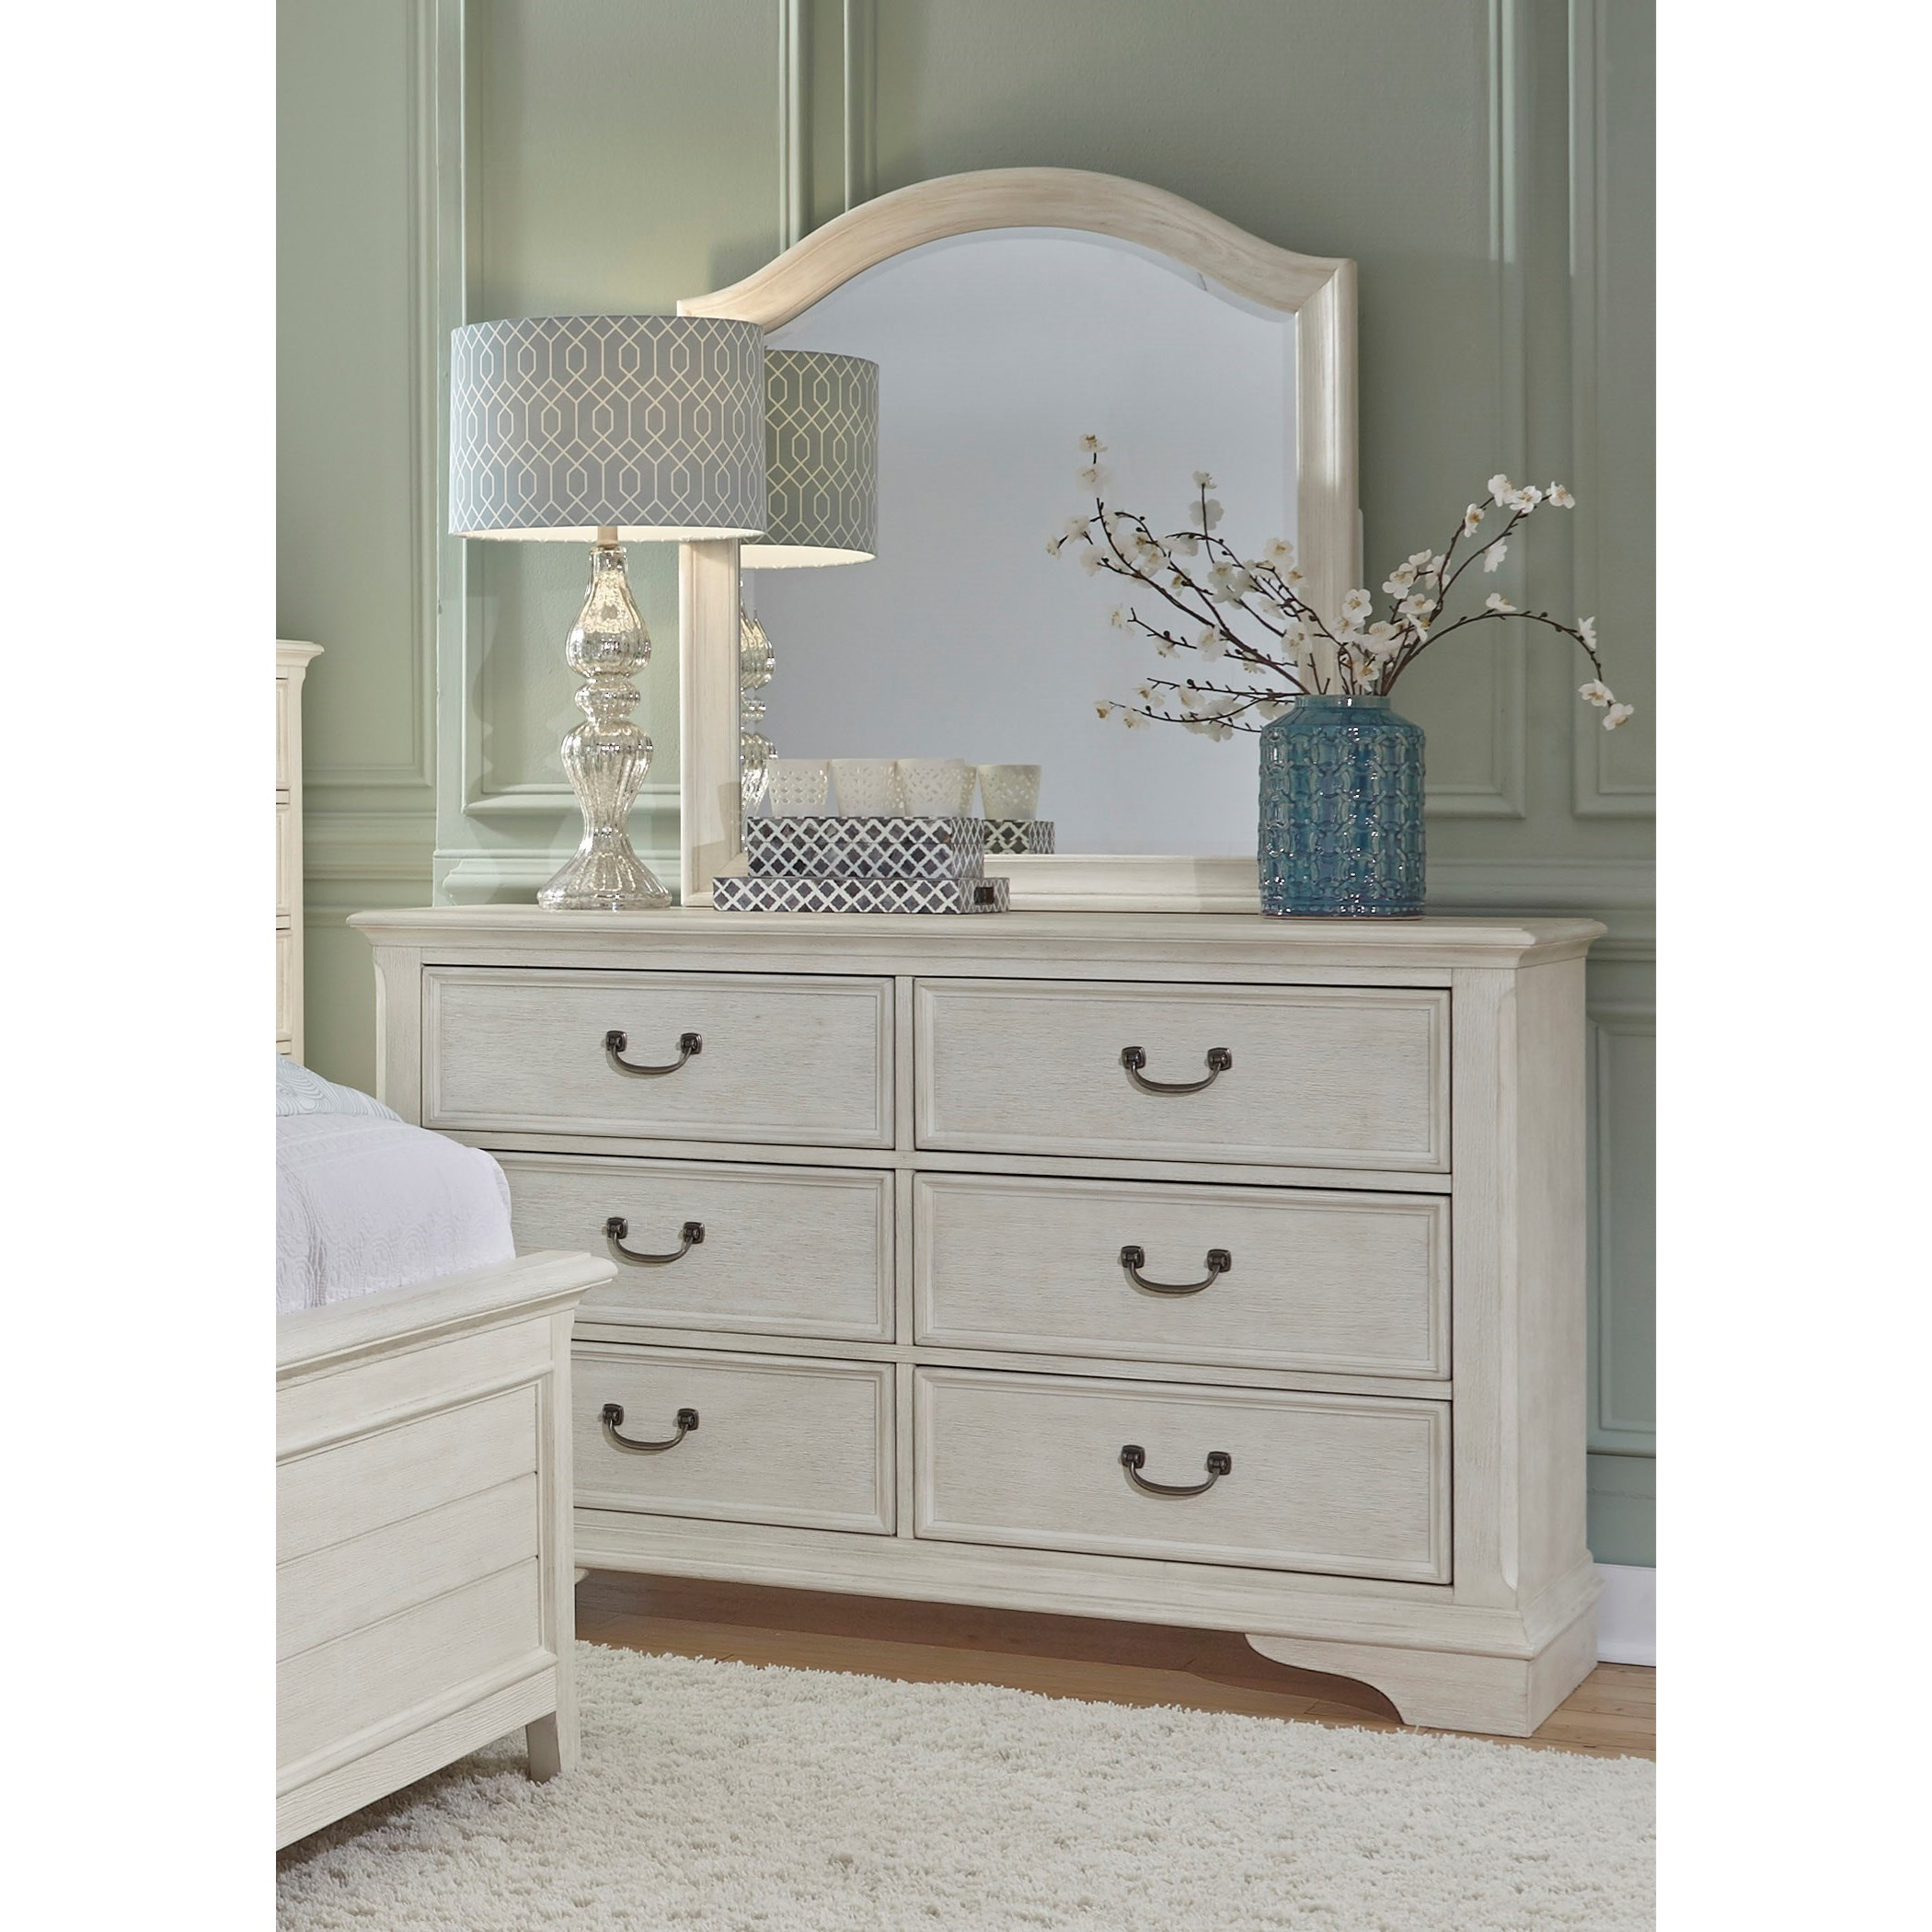 grey awesome sink vanity an hardware bedroom make gold with chest double for dresser would painted pin base